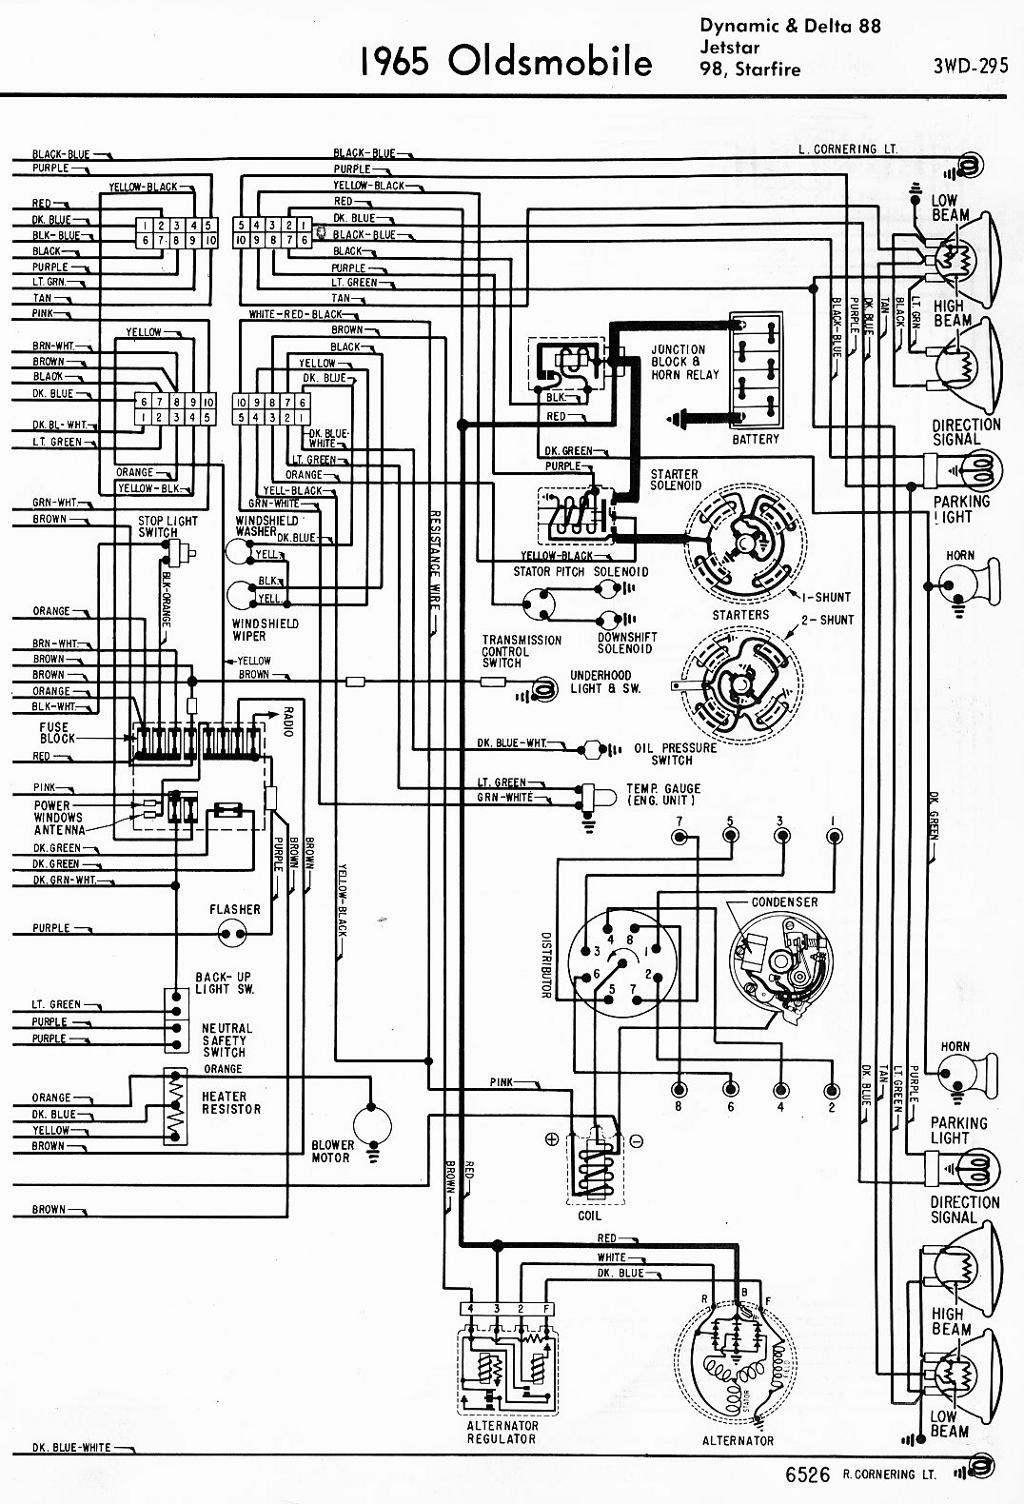 1957 Dodge Truck Wiring Diagram | Online Wiring Diagram on dodge ram leaking coolant, dodge ram starter diagram, dodge ram airbag light, circuit diagram, dodge wire harness diagram, dodge ram parts diagram, dodge ram distributor, 2002 dodge 3500 wire diagram, dodge ram transmission identification, dodge ram radio diagram, dodge ram body diagram, dodge ram infinity system, 2002 dodge ram diagram, dodge ram control panel, dodge ram interior diagram, dodge ram headlight diagram, dodge ram wire harness, 2001 dodge ram electrical diagram, dodge ram tail light wiring, dodge ram 1500 diagram,